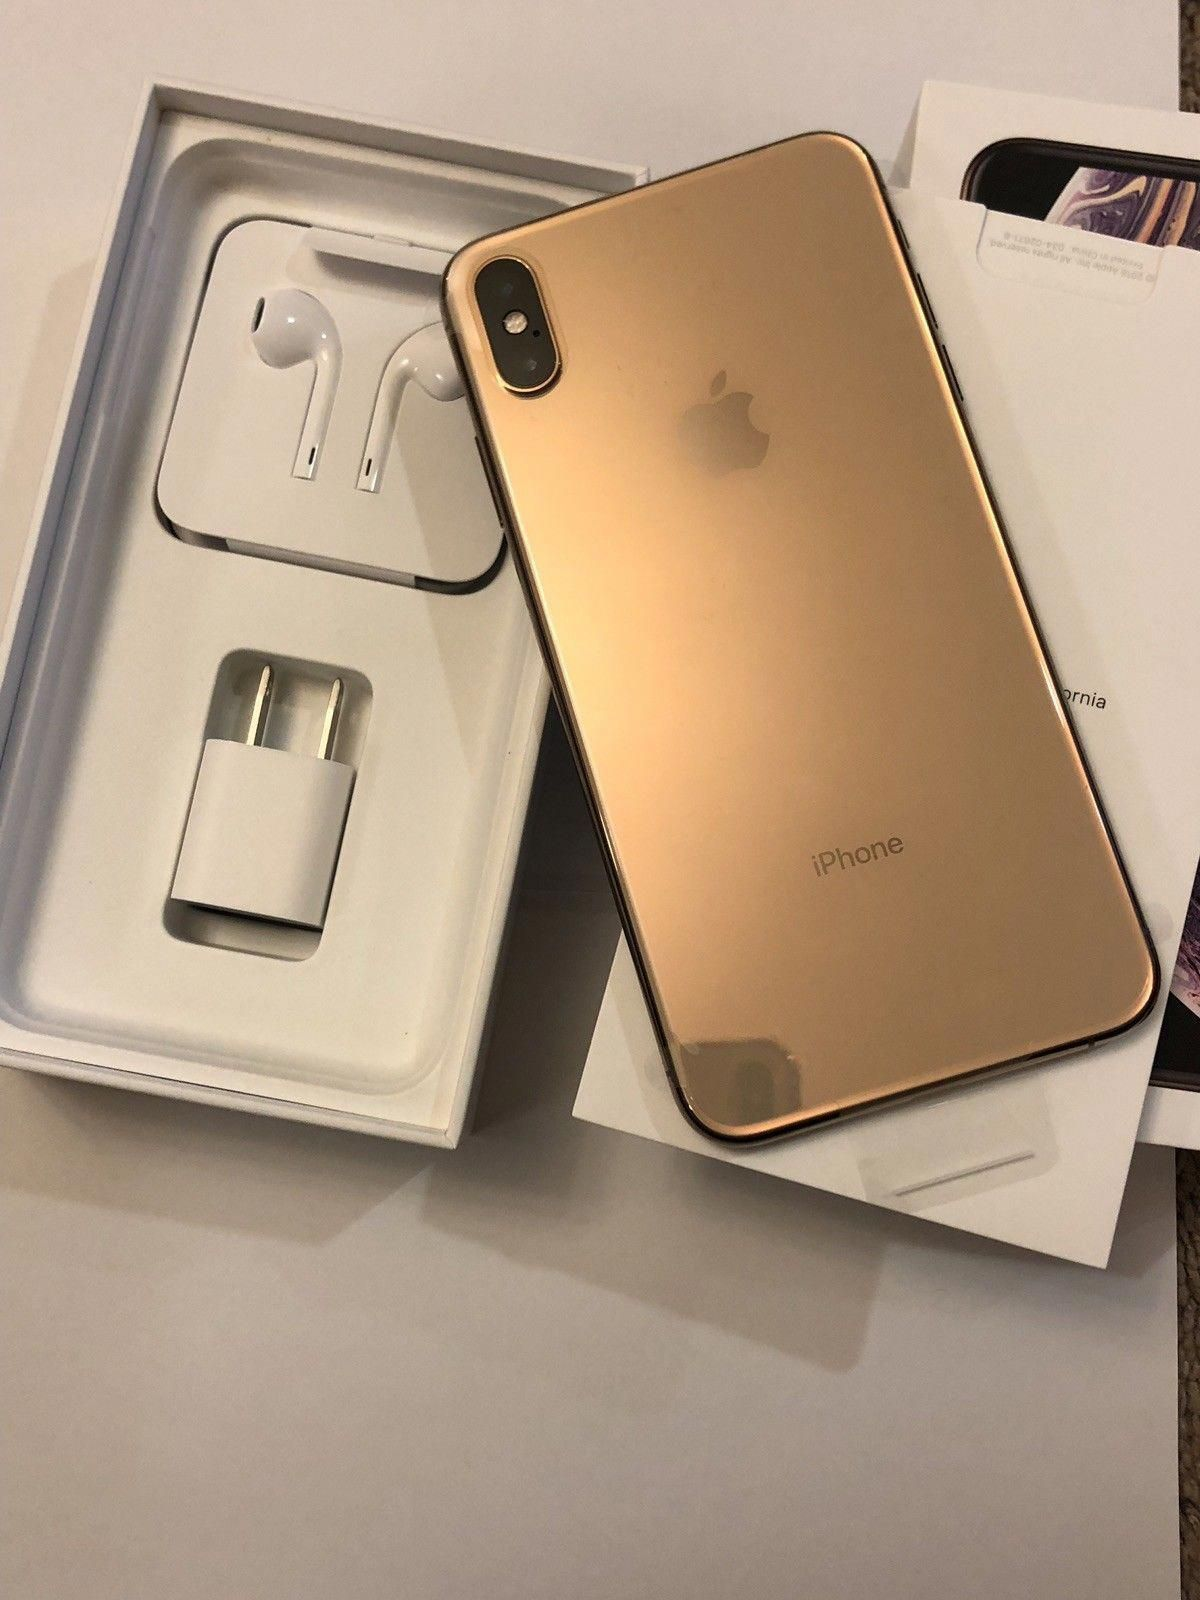 Apple Iphone Xs Max 512gb Gold Verizon A1921 For Sale Free Local Classifieds Ads Quick Market Iphone7plus Apple Iphone Gold Iphone Apple Phone